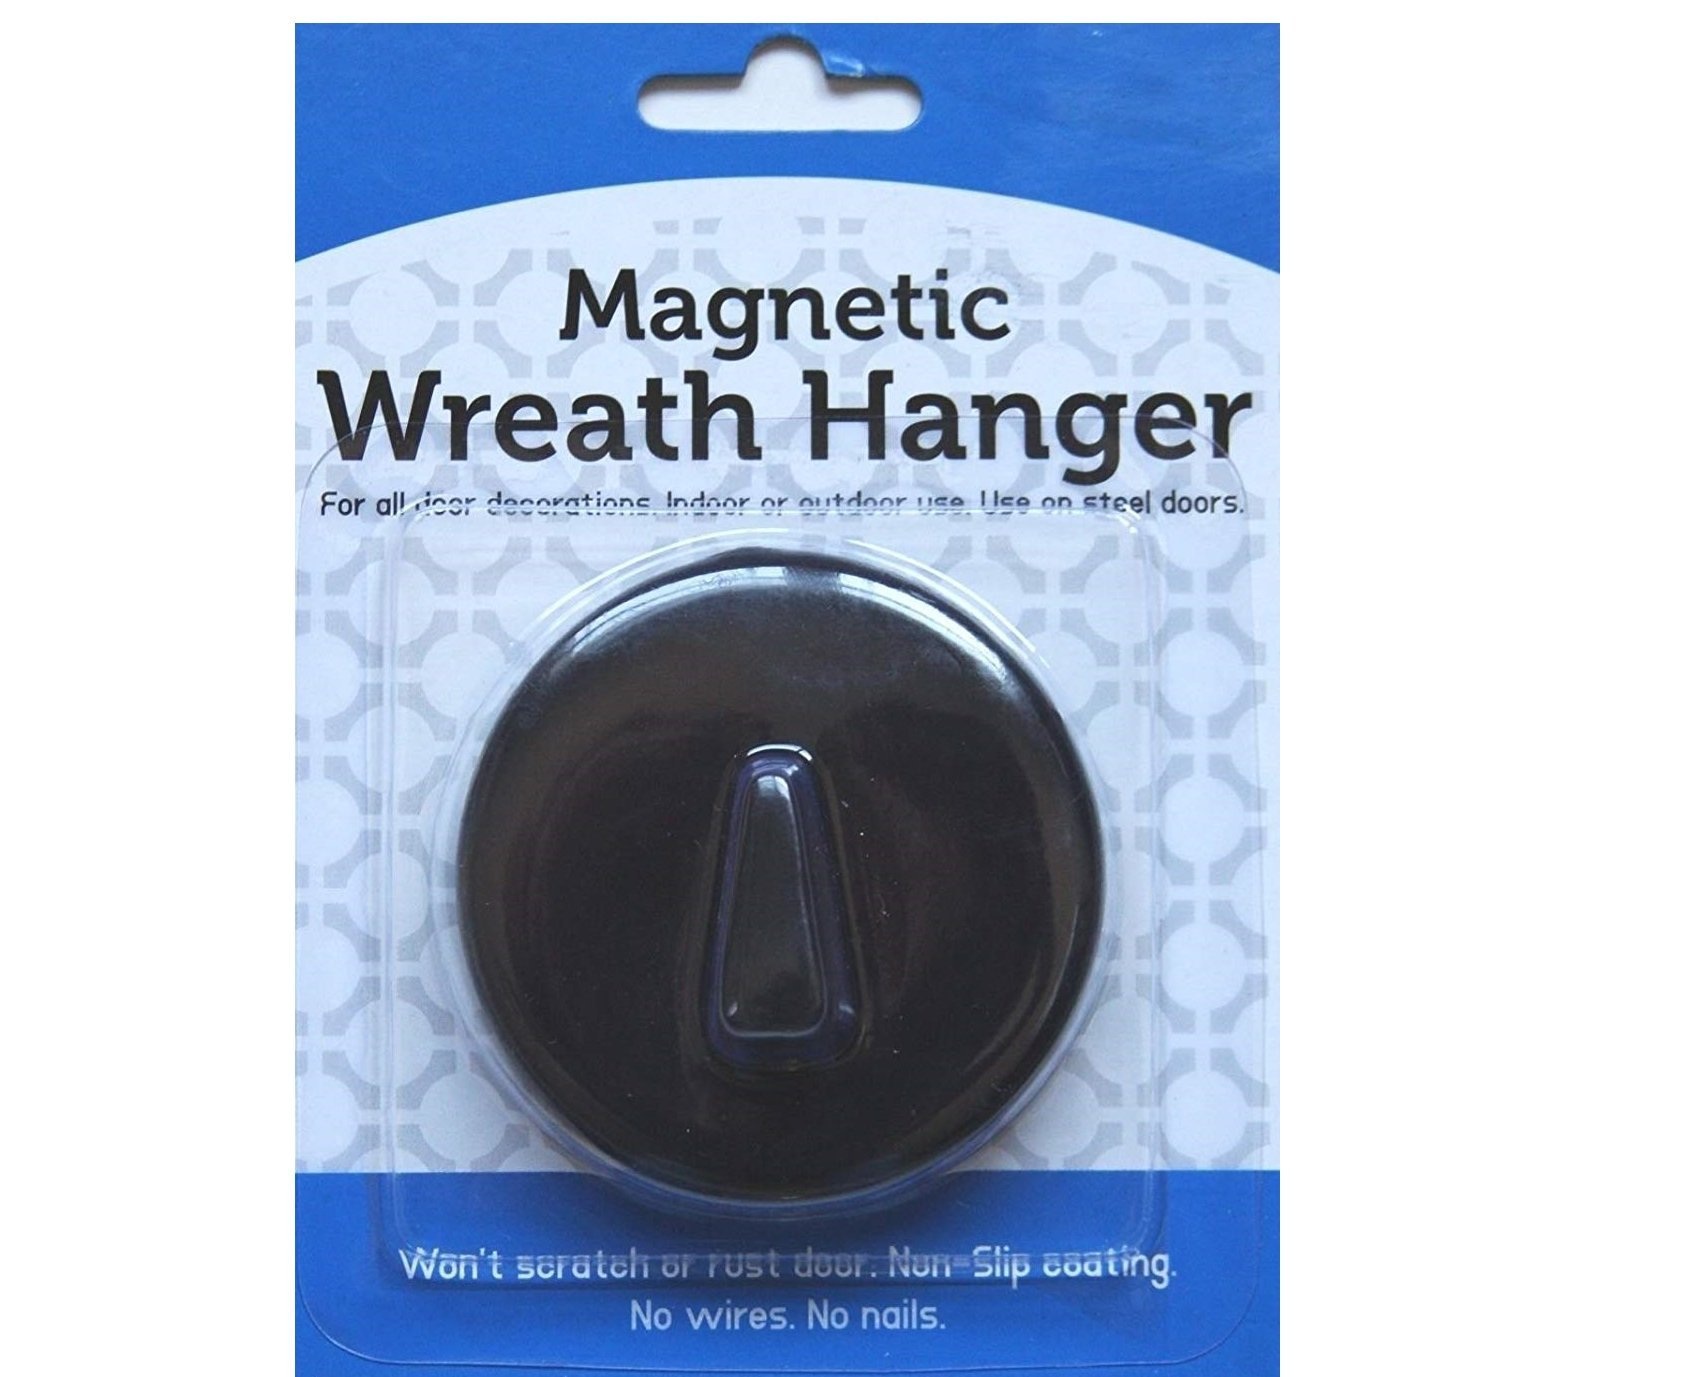 Nantucket Home Magnetic Wreath Hanger - Black